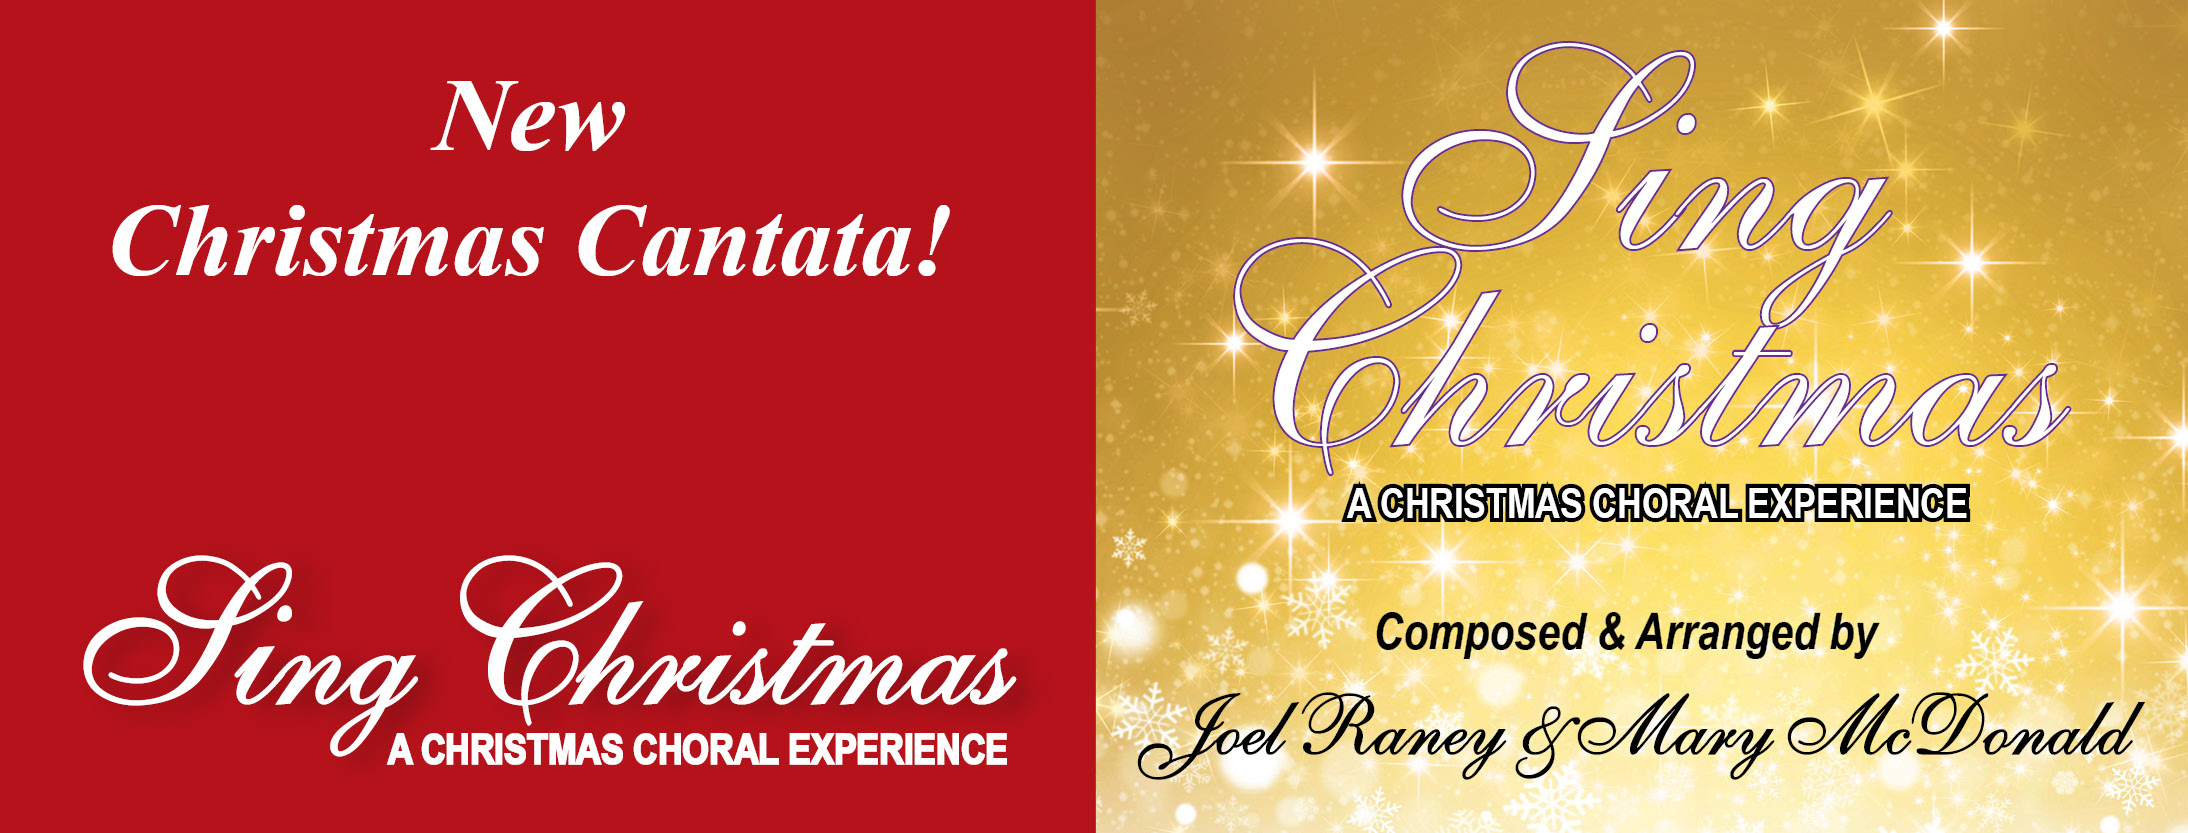 welcome to hope publishing company - Christmas Cantatas For Small Choirs